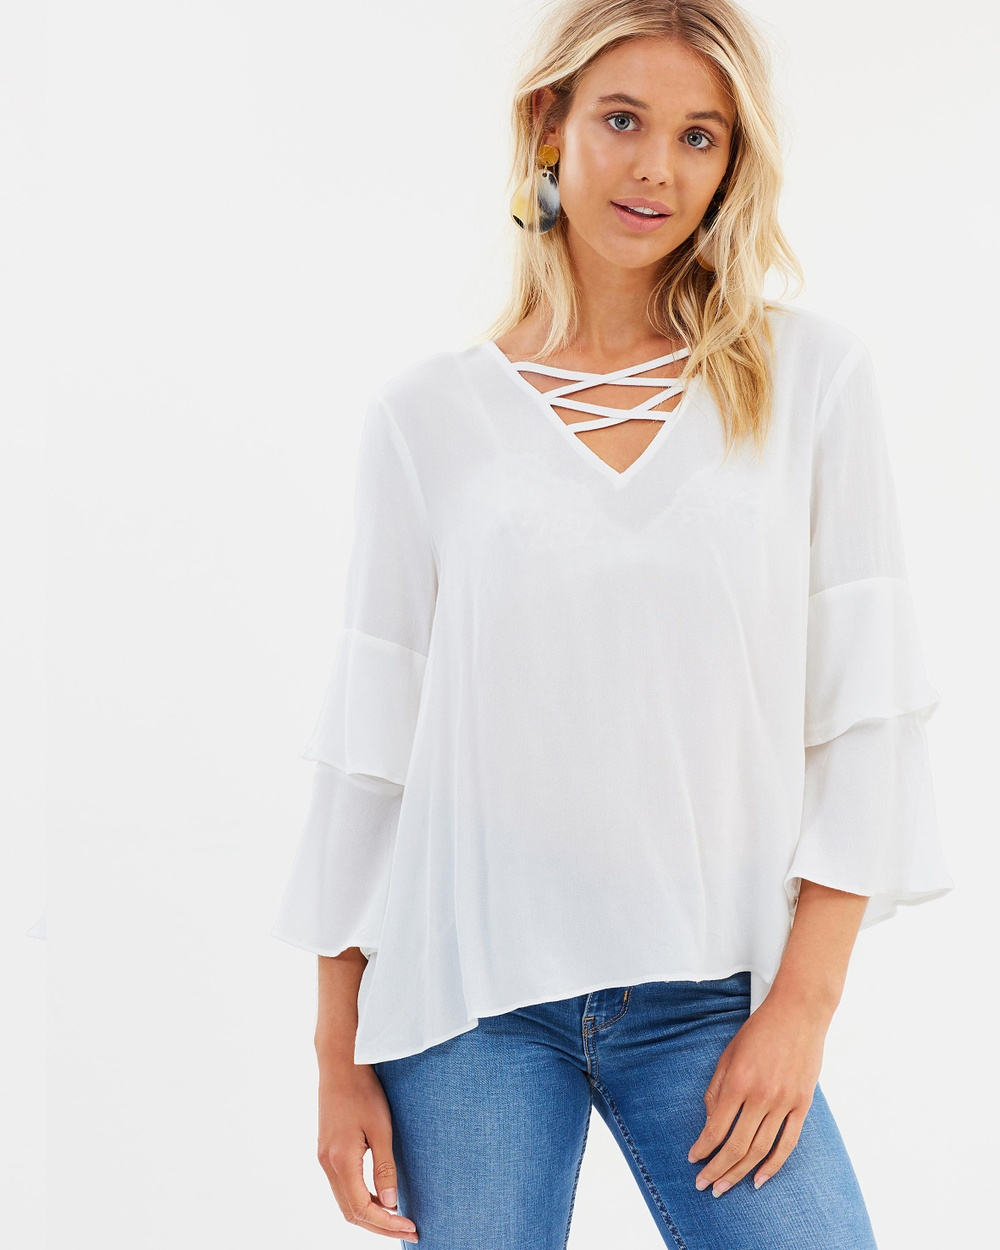 Sass Flossy Double Bell Blouse Tops Pearl Flossy Double Bell Blouse